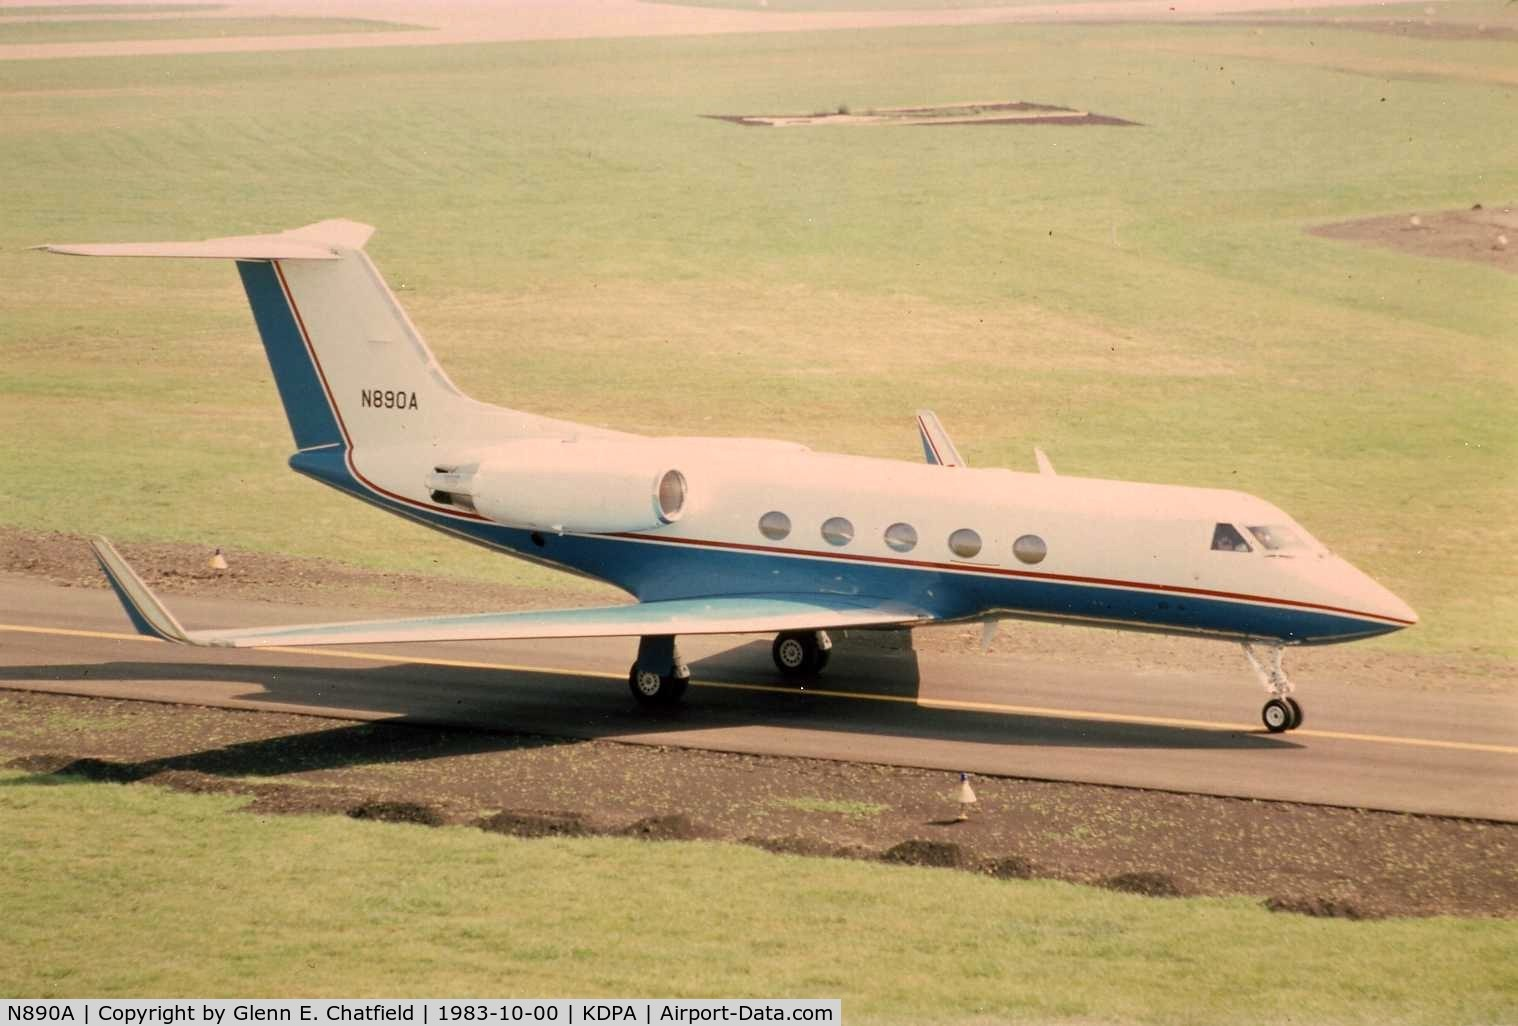 N890A, 1968 Gulfstream Aerospace G1159B C/N 16, Photo taken for aircraft recognition training